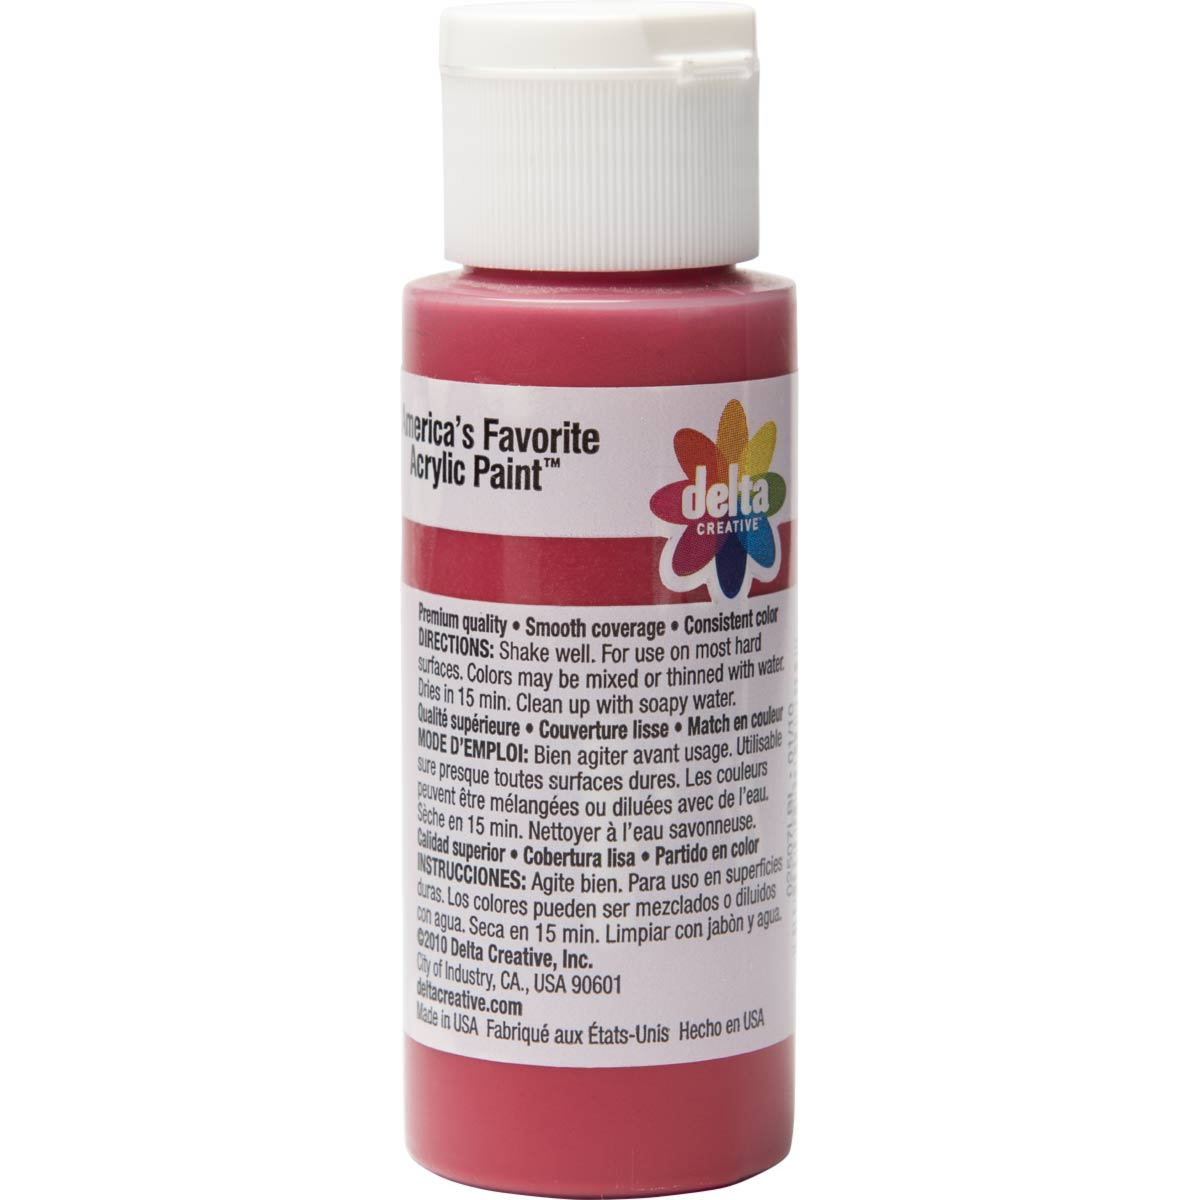 Delta Ceramcoat ® Acrylic Paint - Opaque Red, 2 oz.